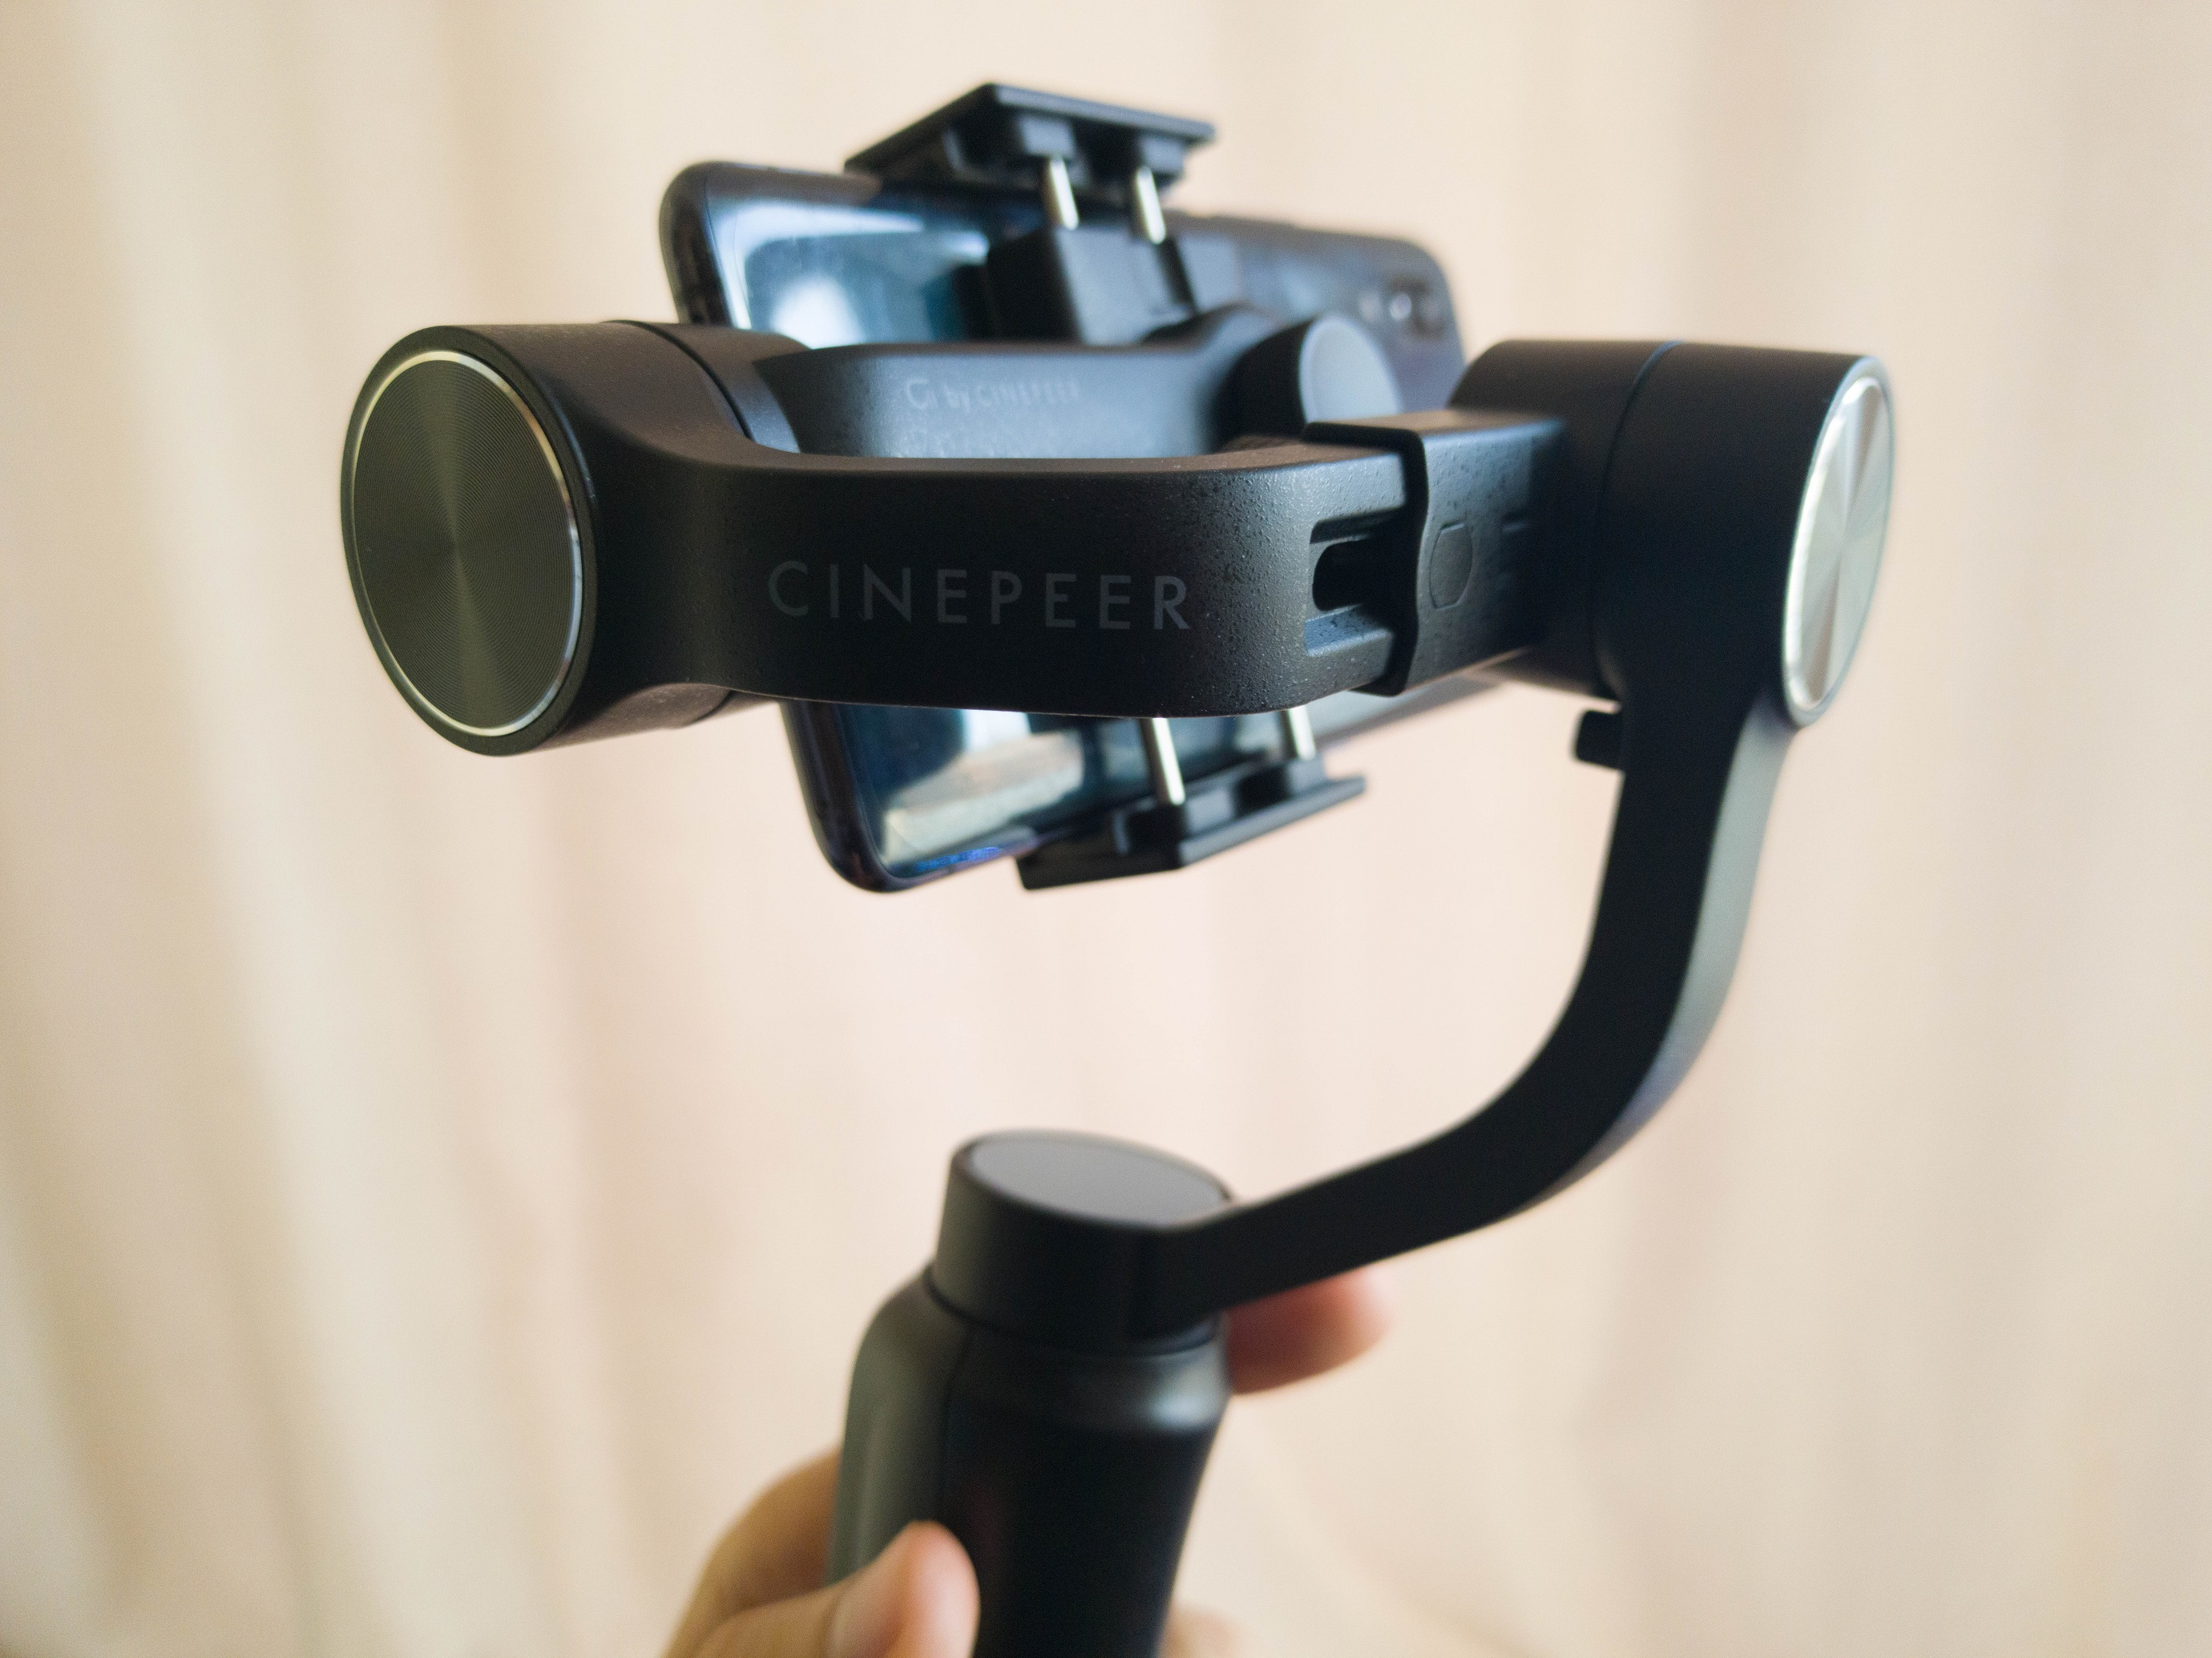 Cinepeer C11 av Zhiyun Gimbal Review